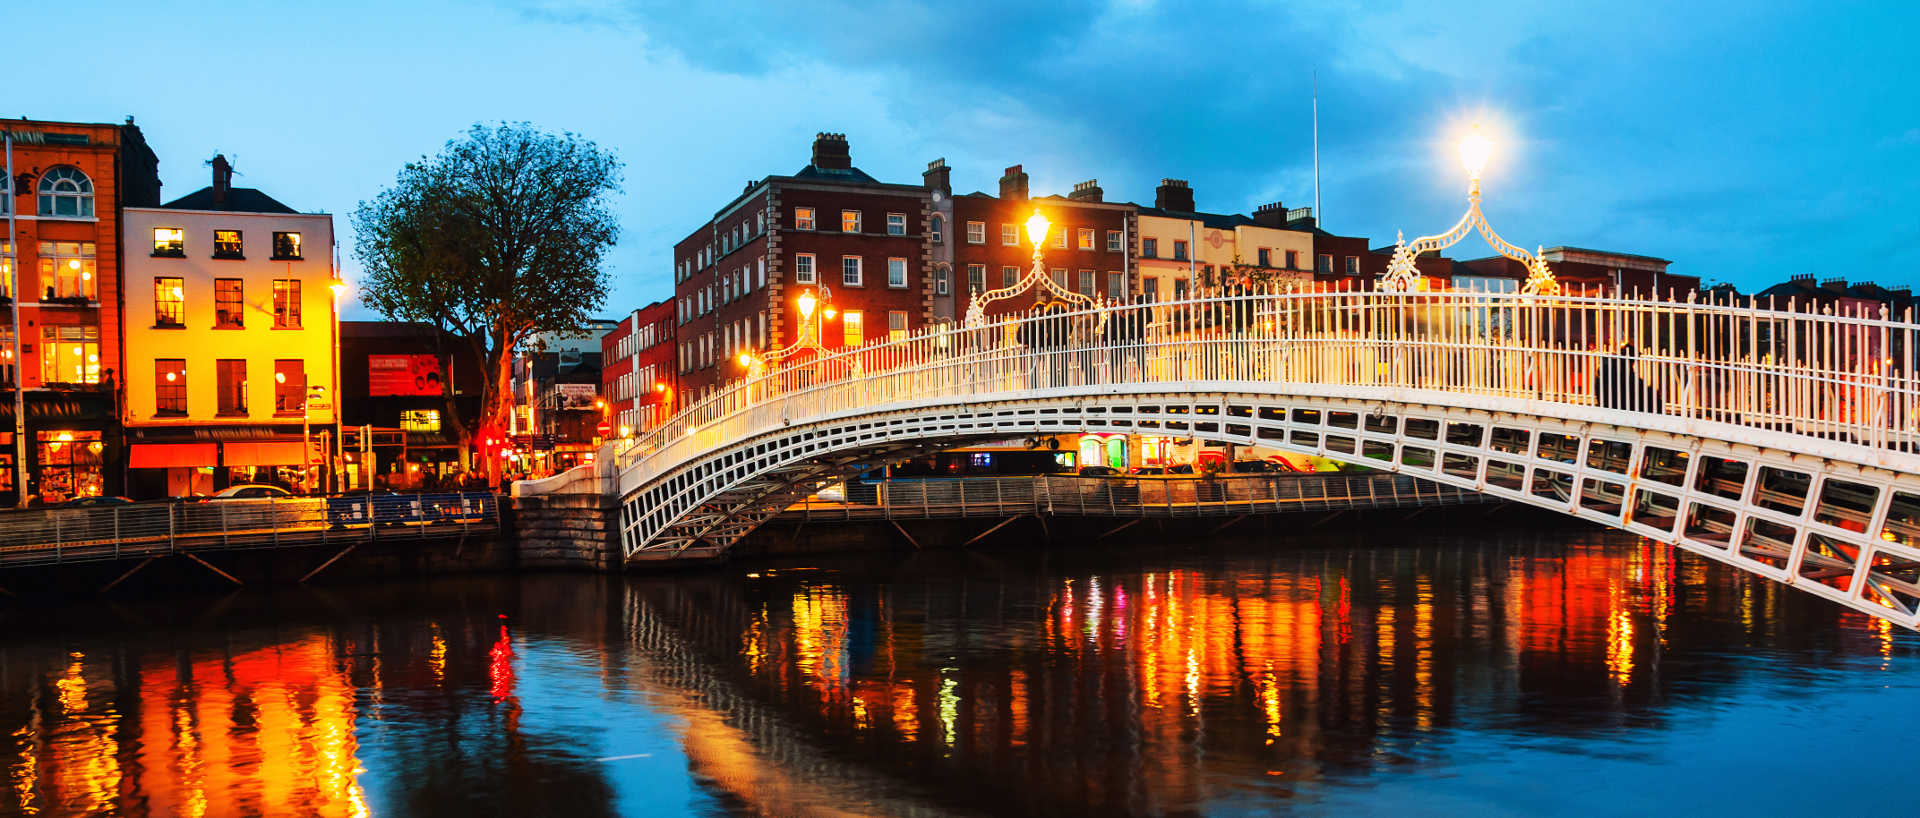 Serviced apartments in Dublin City Centre